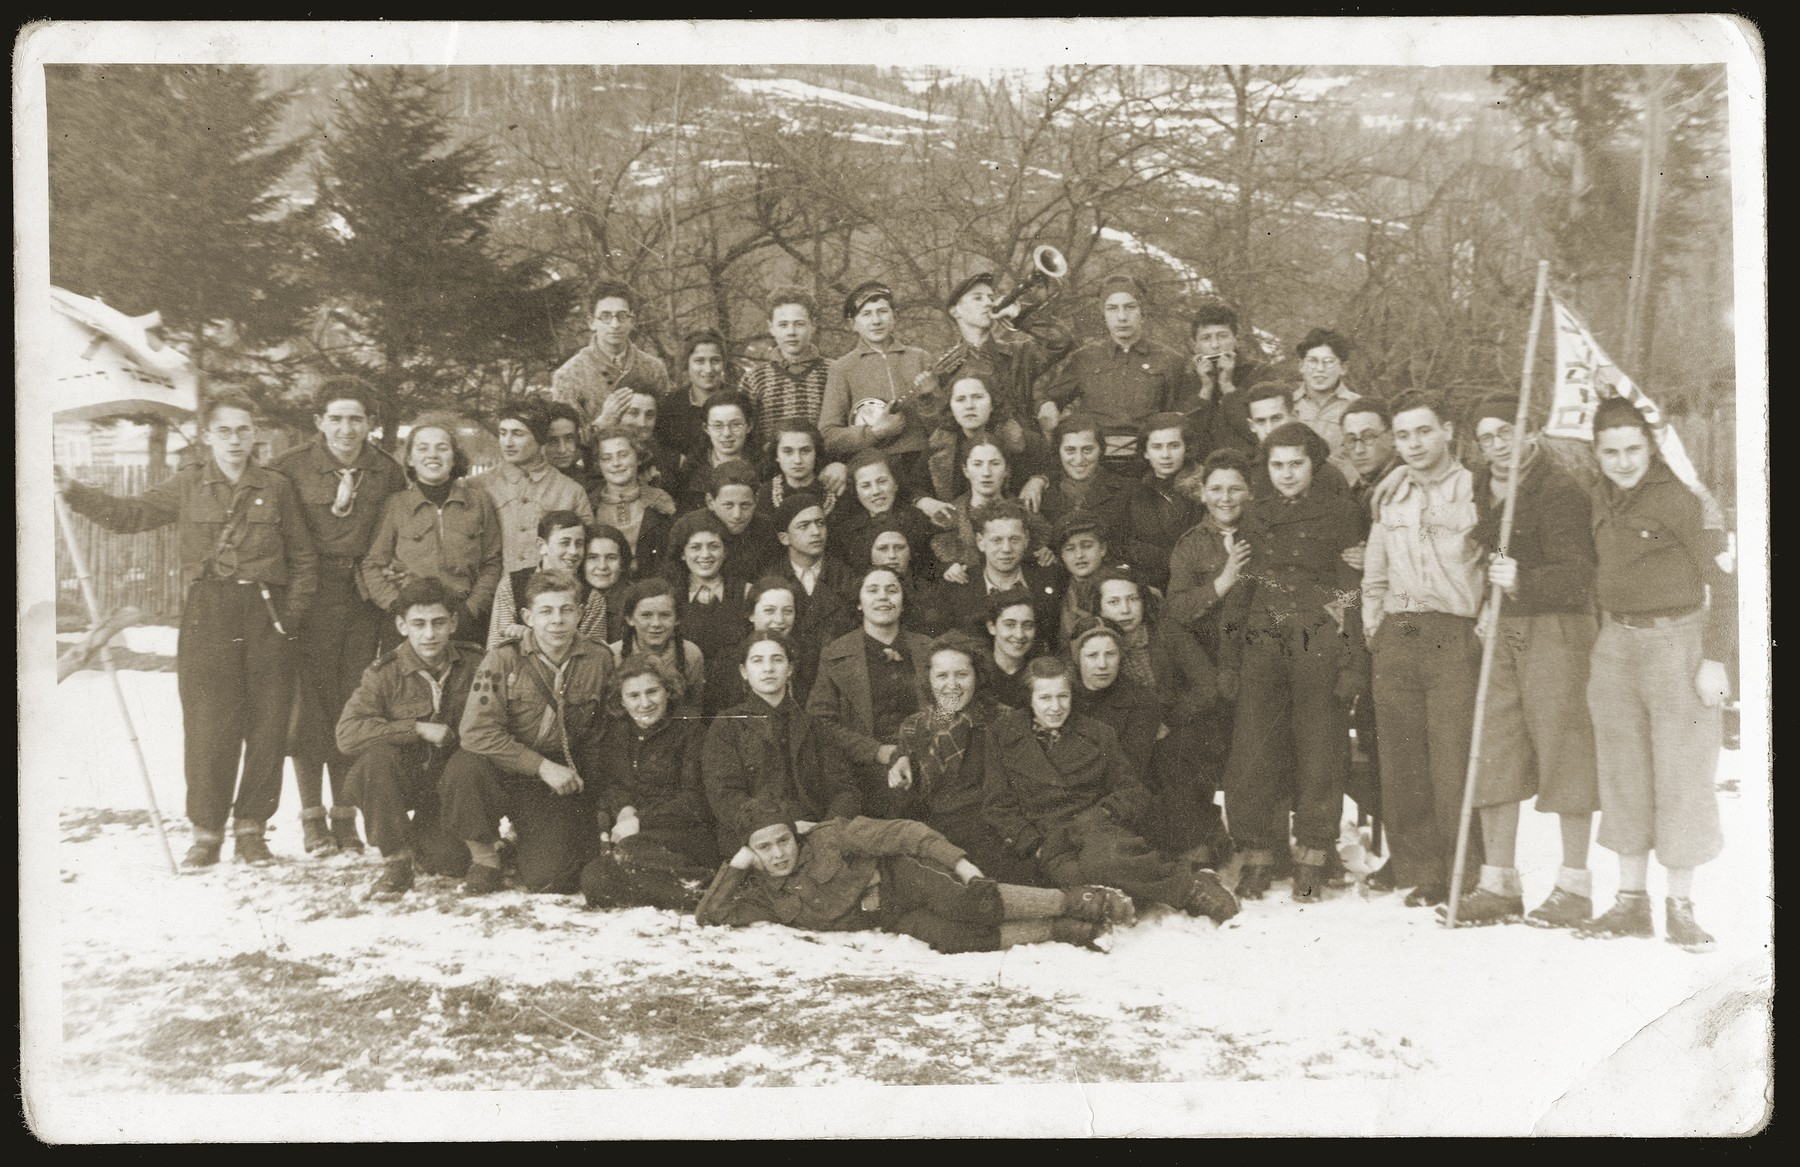 Group portrait of members of the Tzofim (Jewish scouts) from the Furstenberg gymnasium in Bedzin.